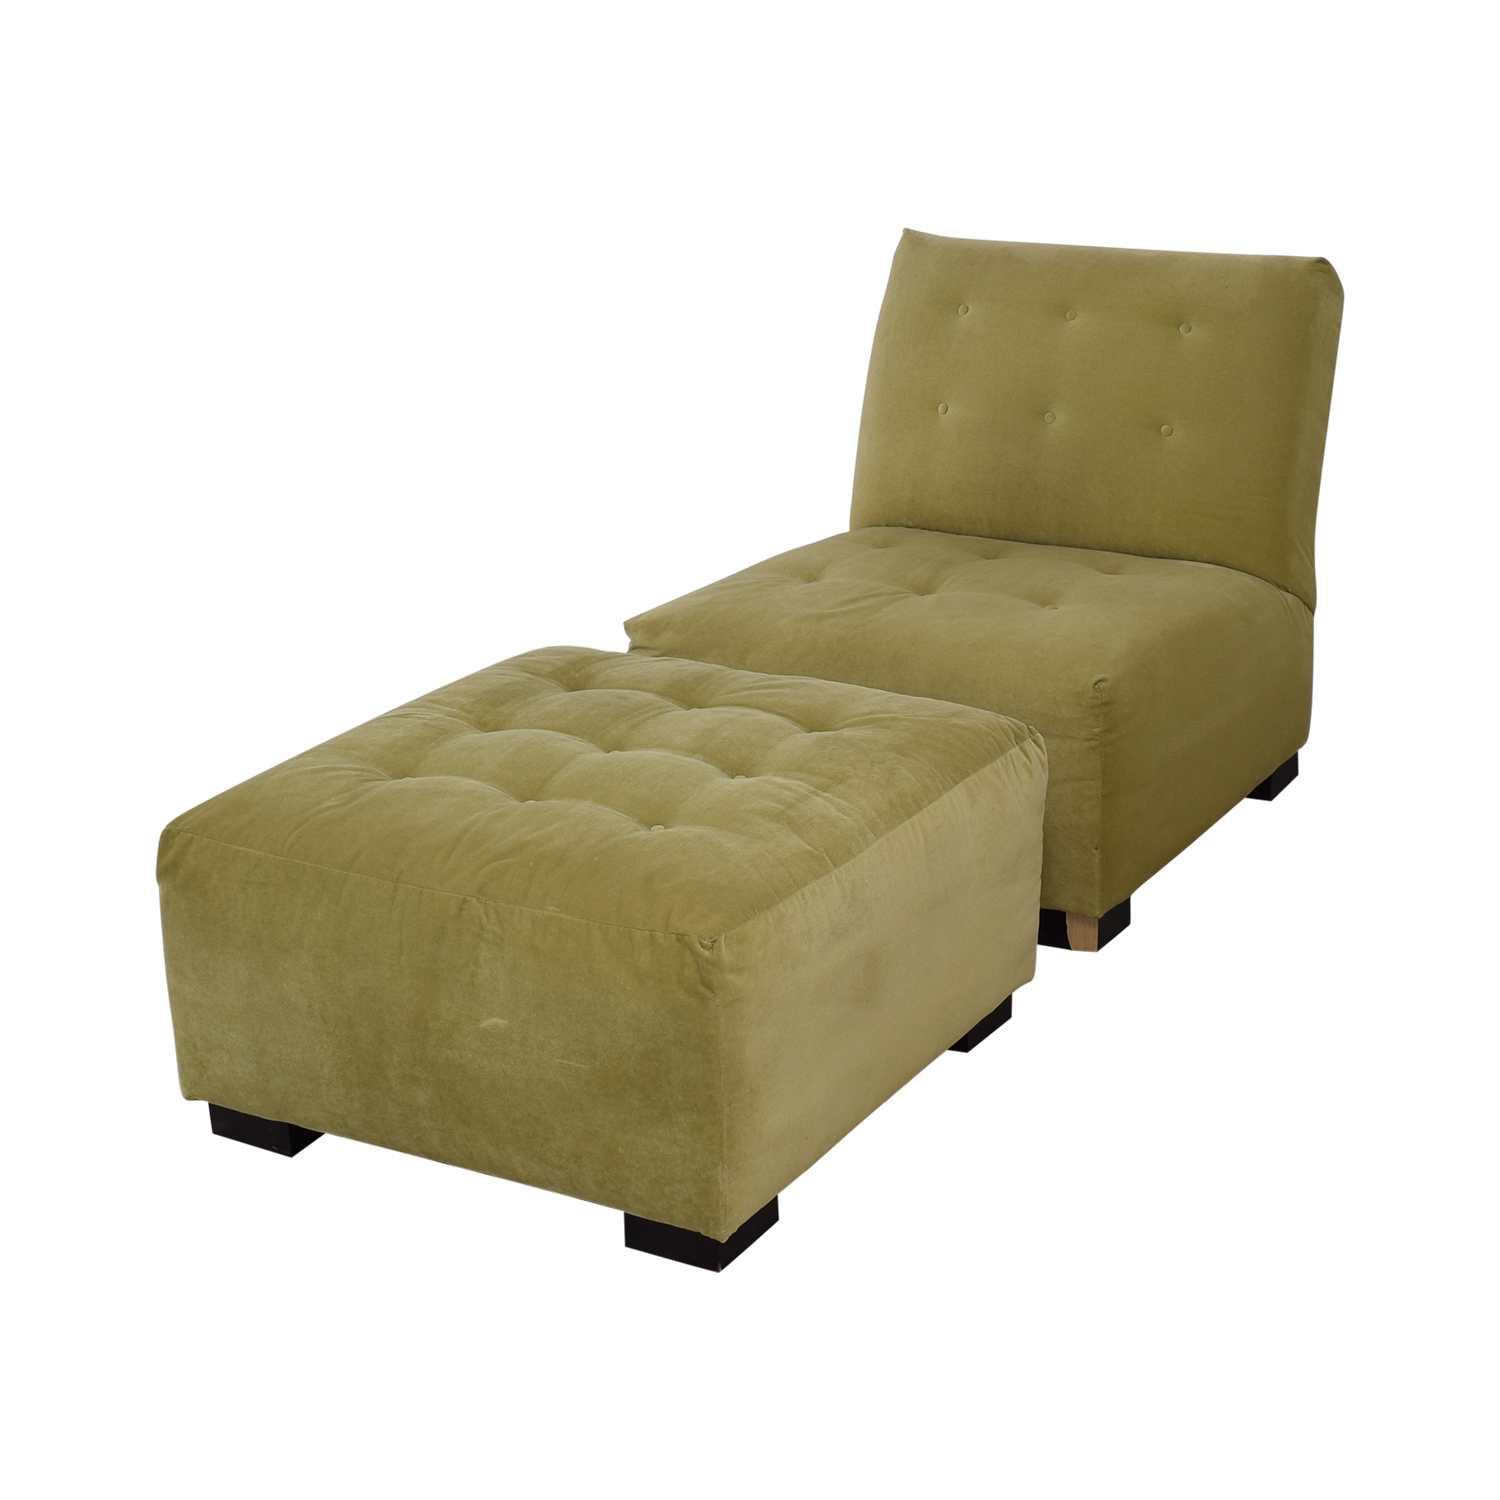 buy Crate & Barrel Sage Green Tufted Lounge Chair & Ottoman Crate & Barrel